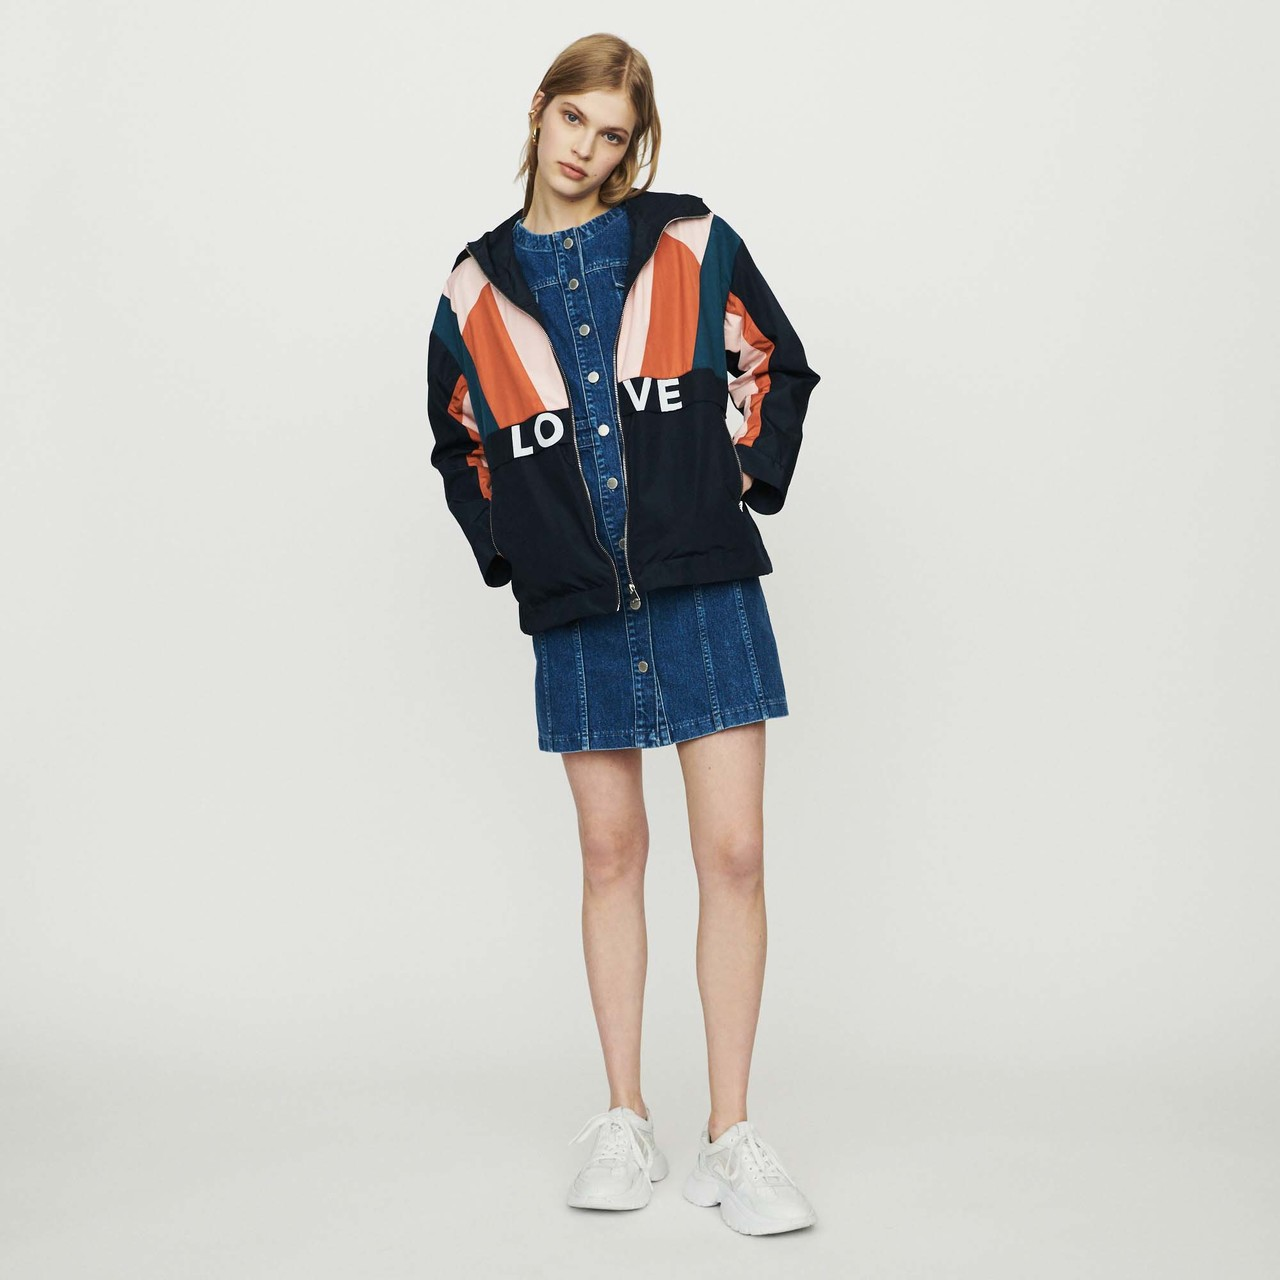 Multicolored Windproof Jacket - Navy